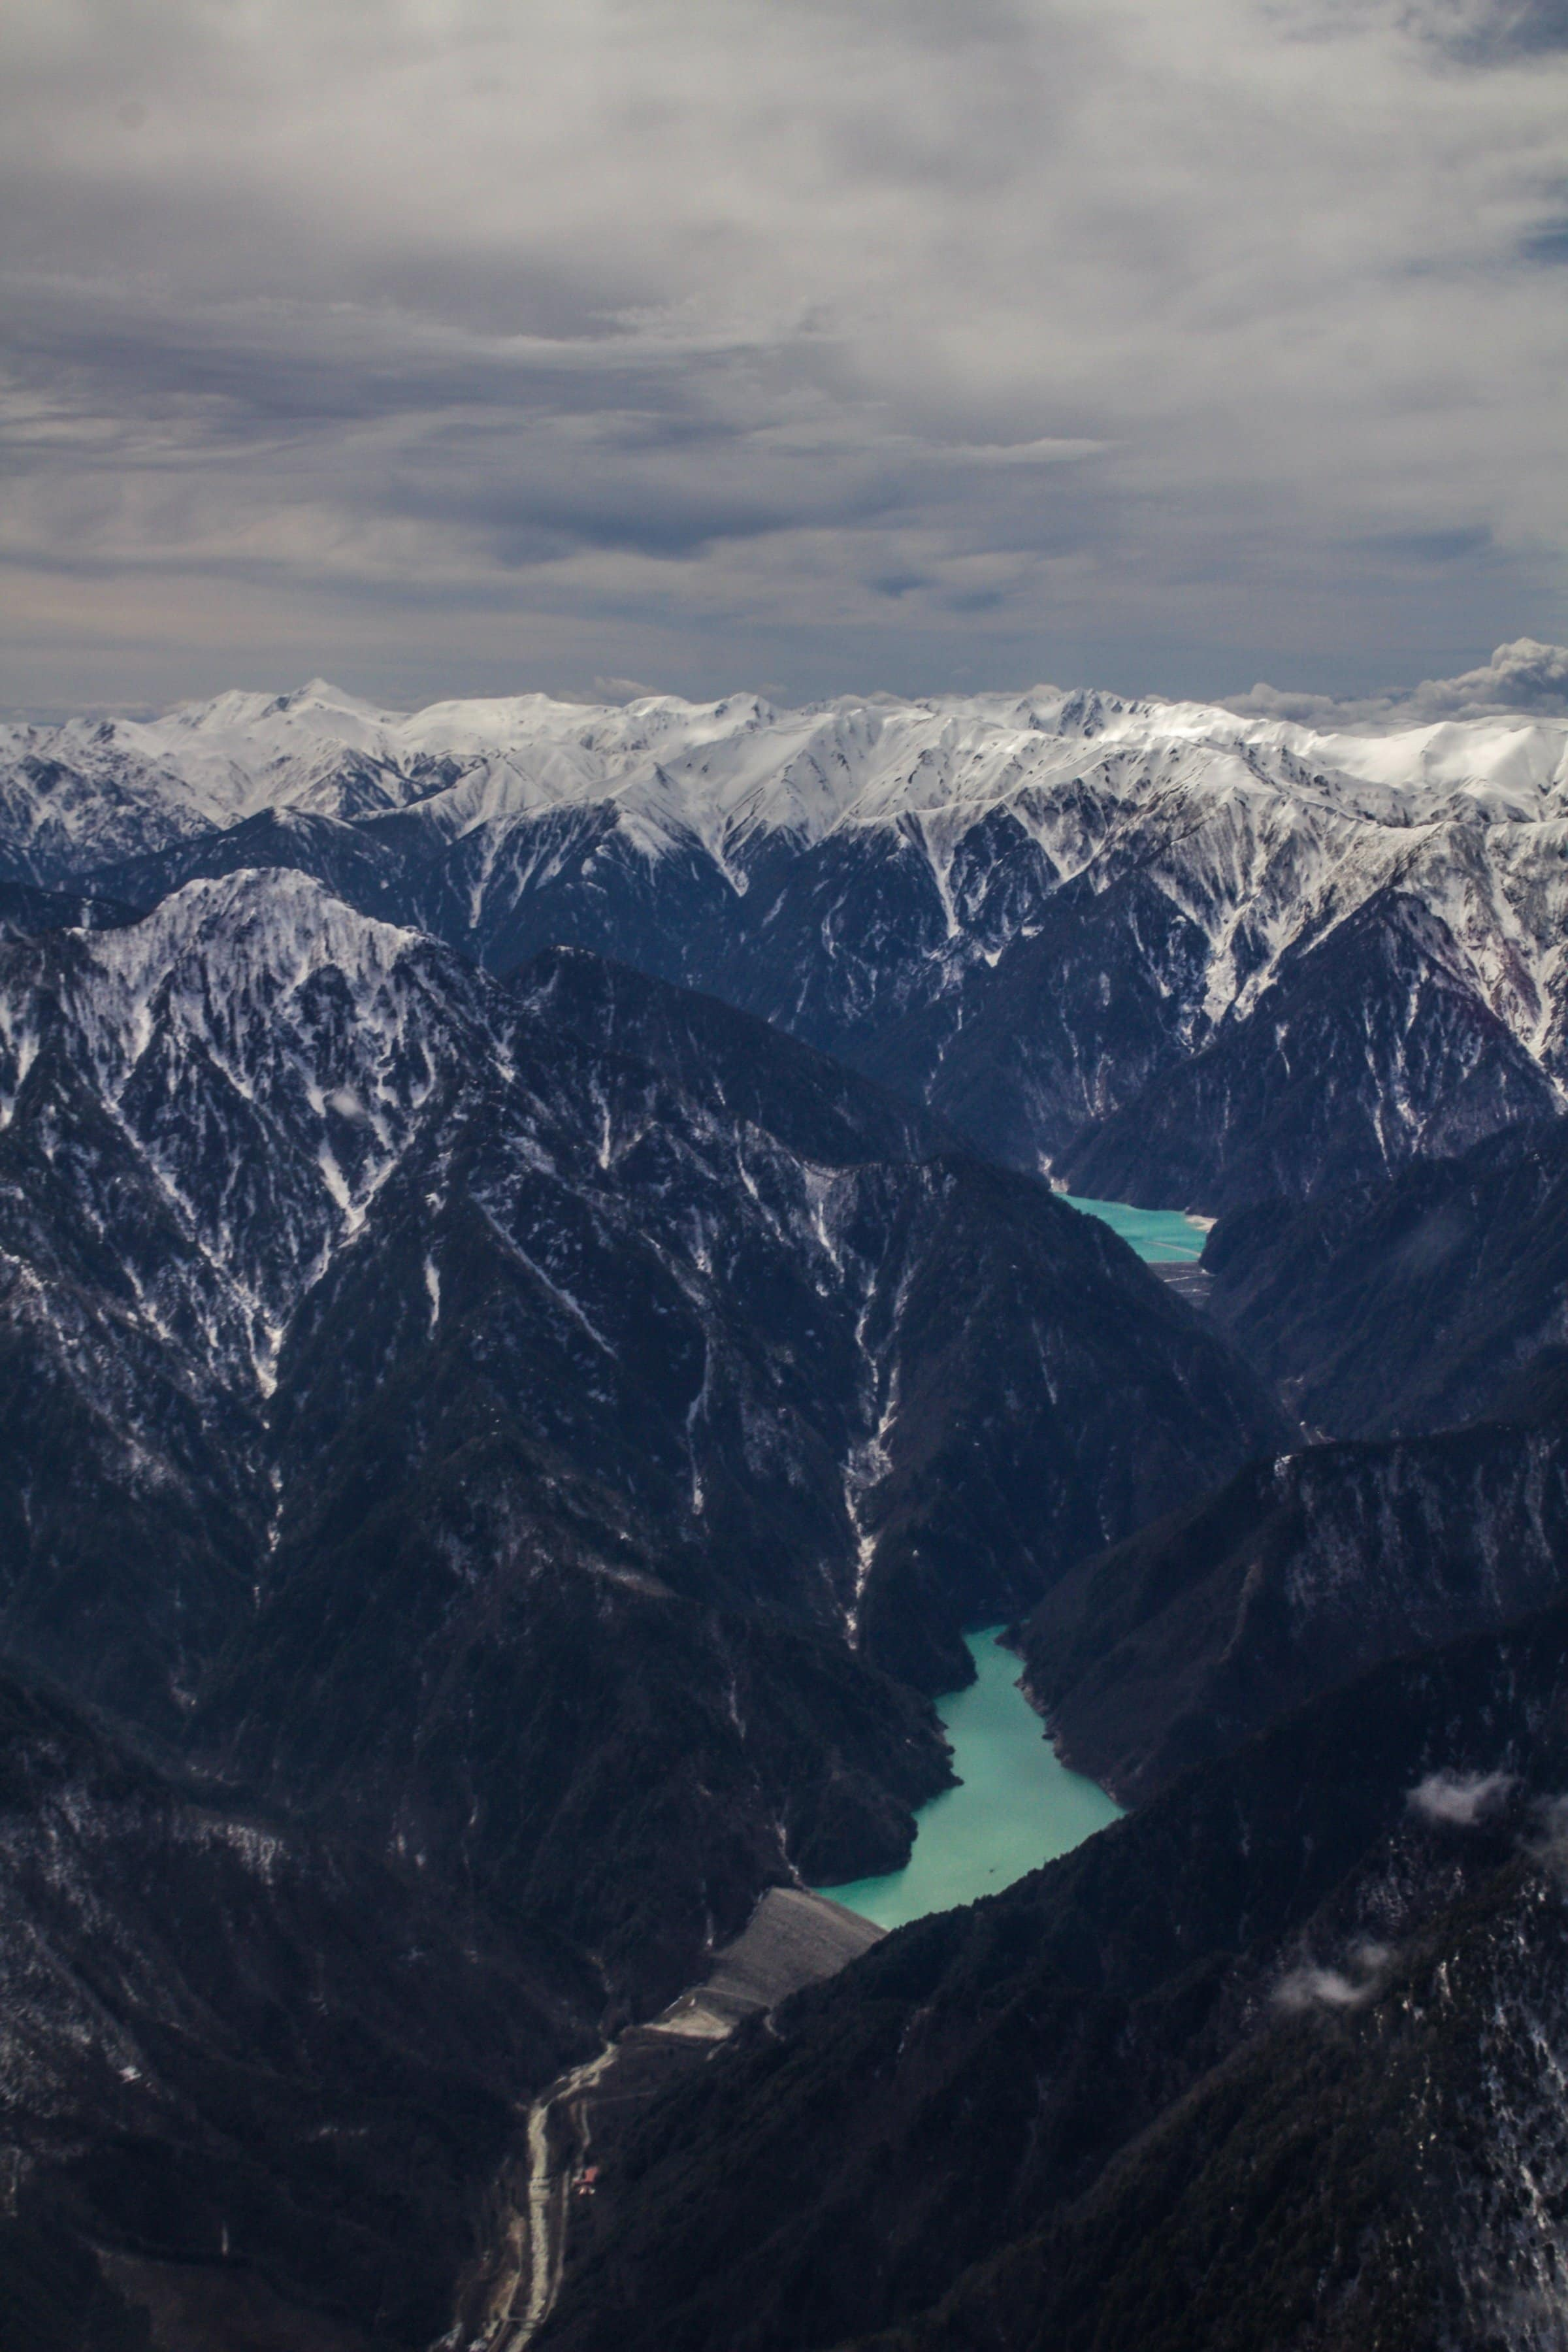 Gliding makes accessible the beautifully inaccessible. Why not try gliding over the stunning Japanese Alps? Contact Craig Shaw, go to Nagano, and hop on in! Read more at thefivefoottraveler.com